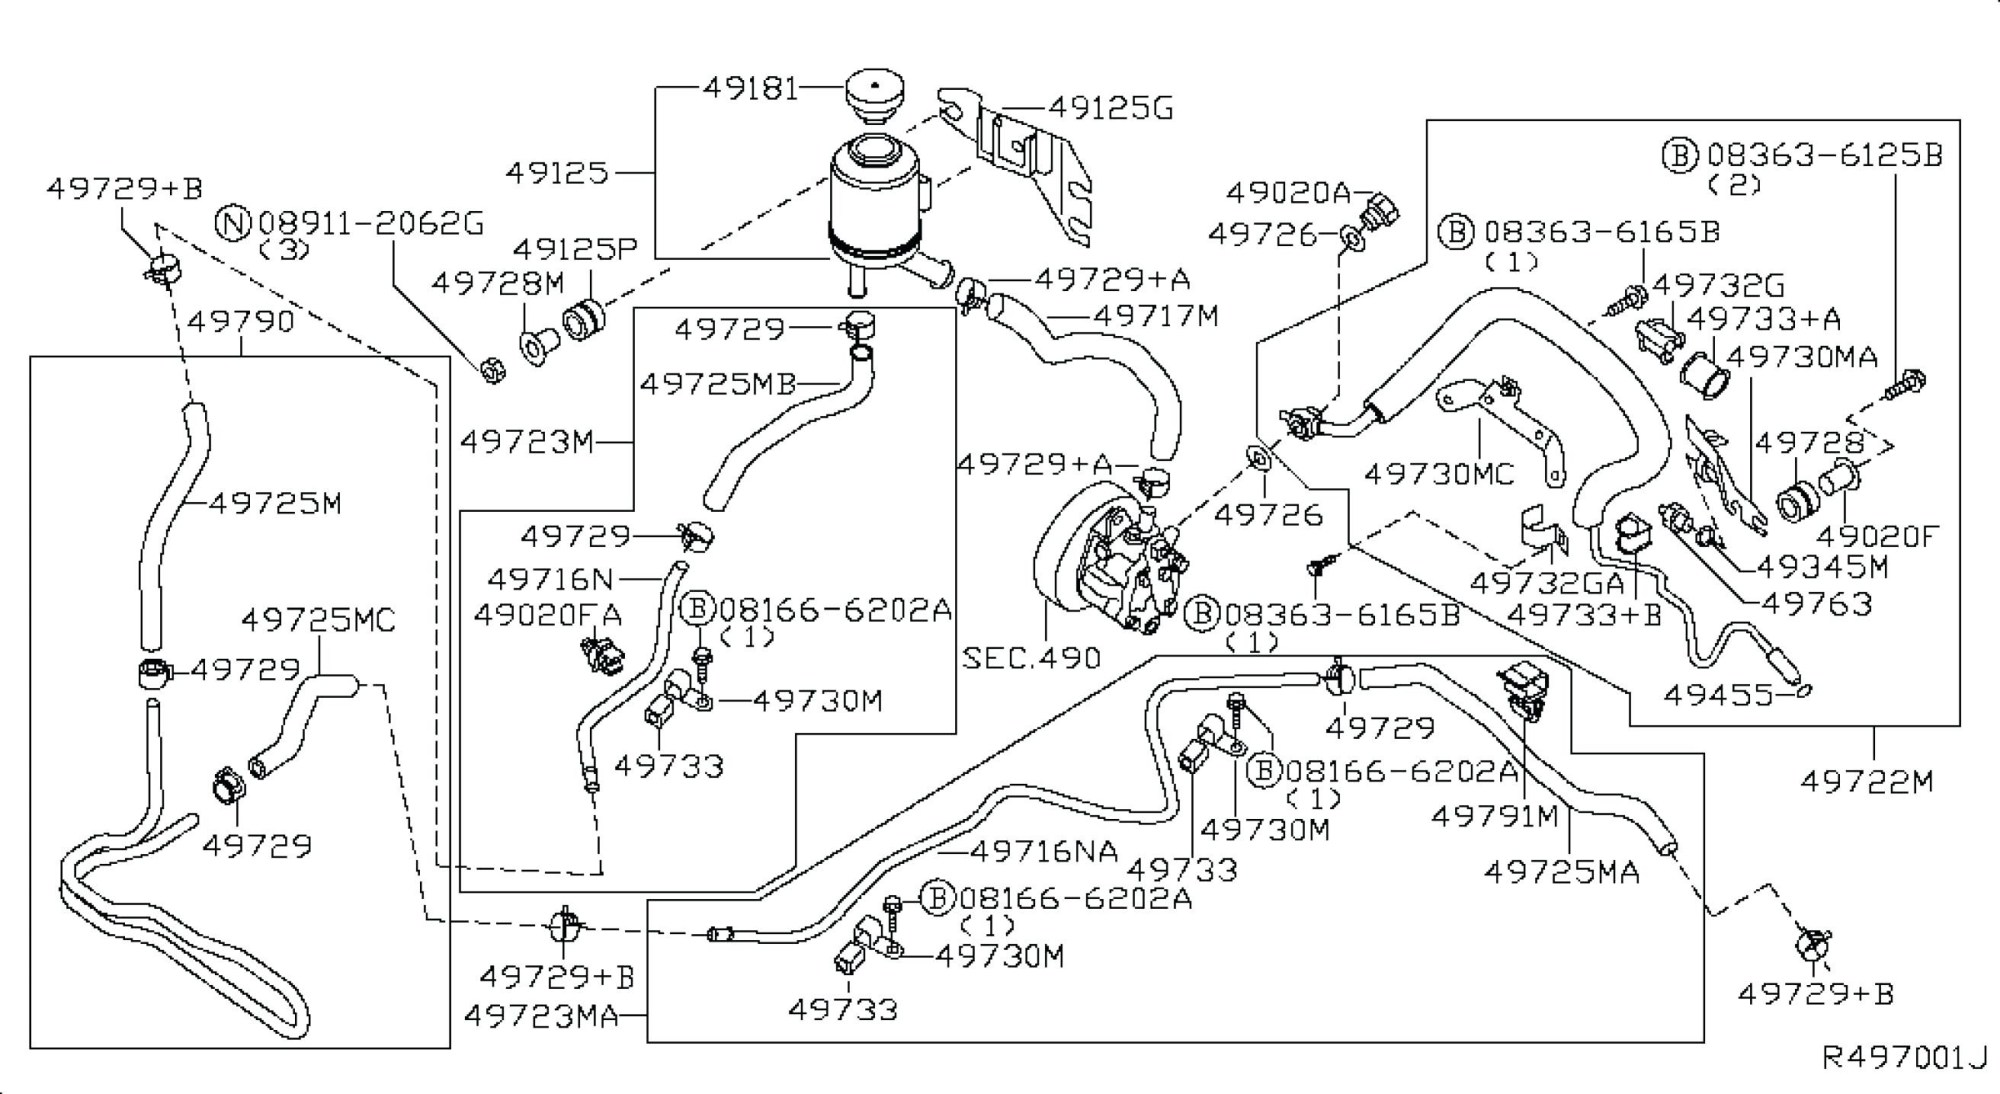 hight resolution of 2005 sti wiring diagram diagram data schema2005 sti wiring diagram wiring library 2005 sti stereo wiring